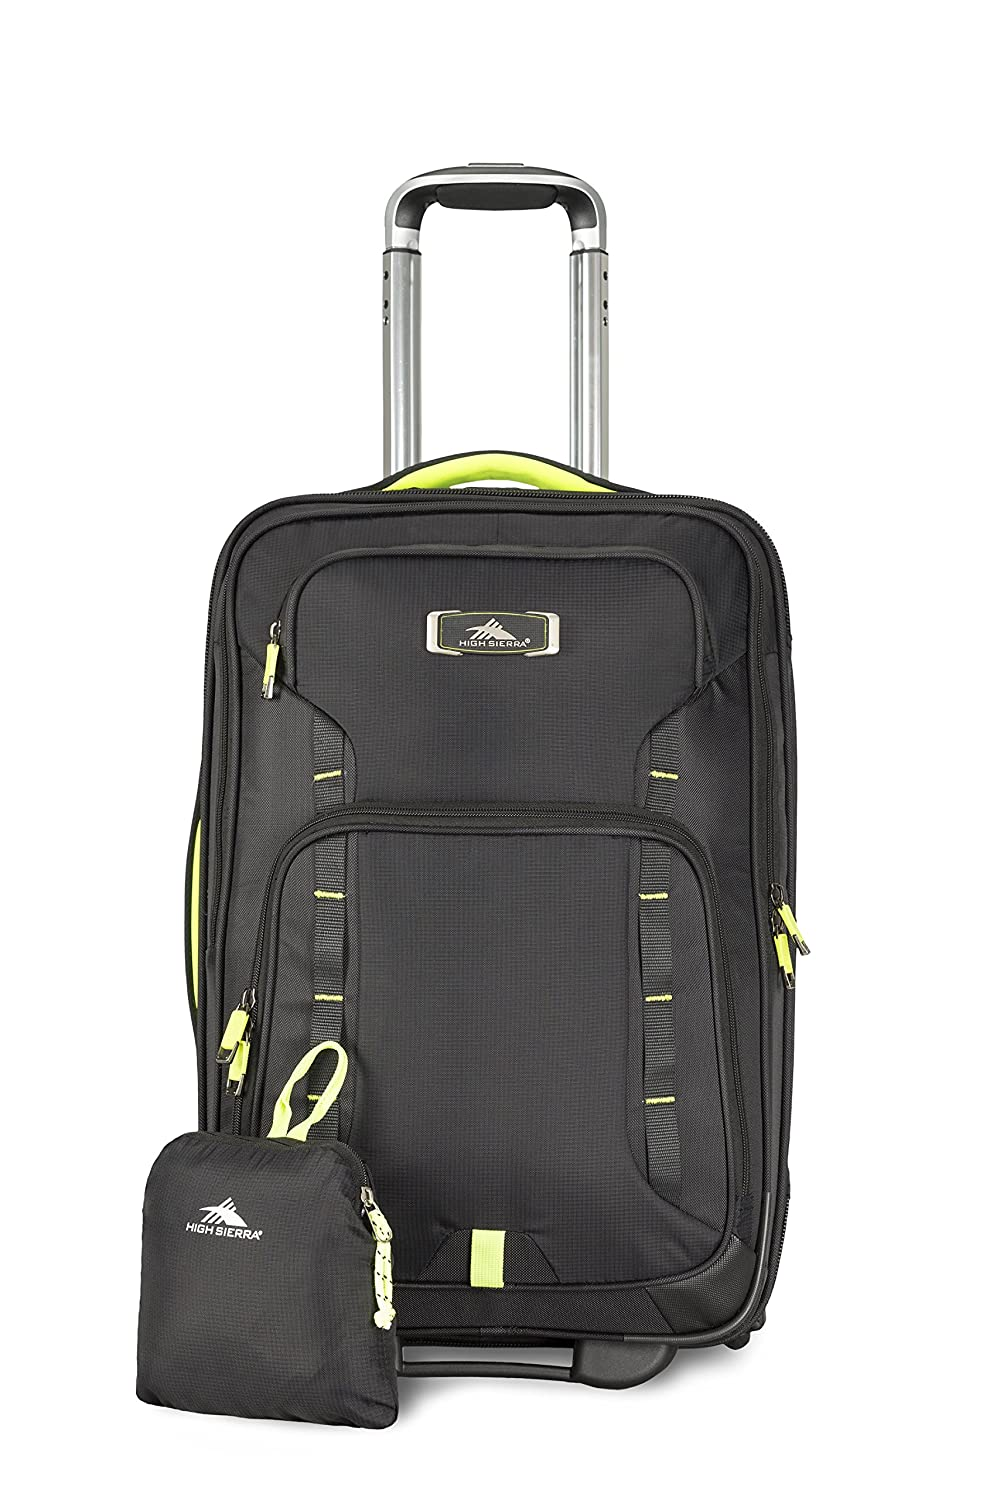 fca206beb High Sierra At7 Carry On Wheeled Backpack With Removable Daypack ...